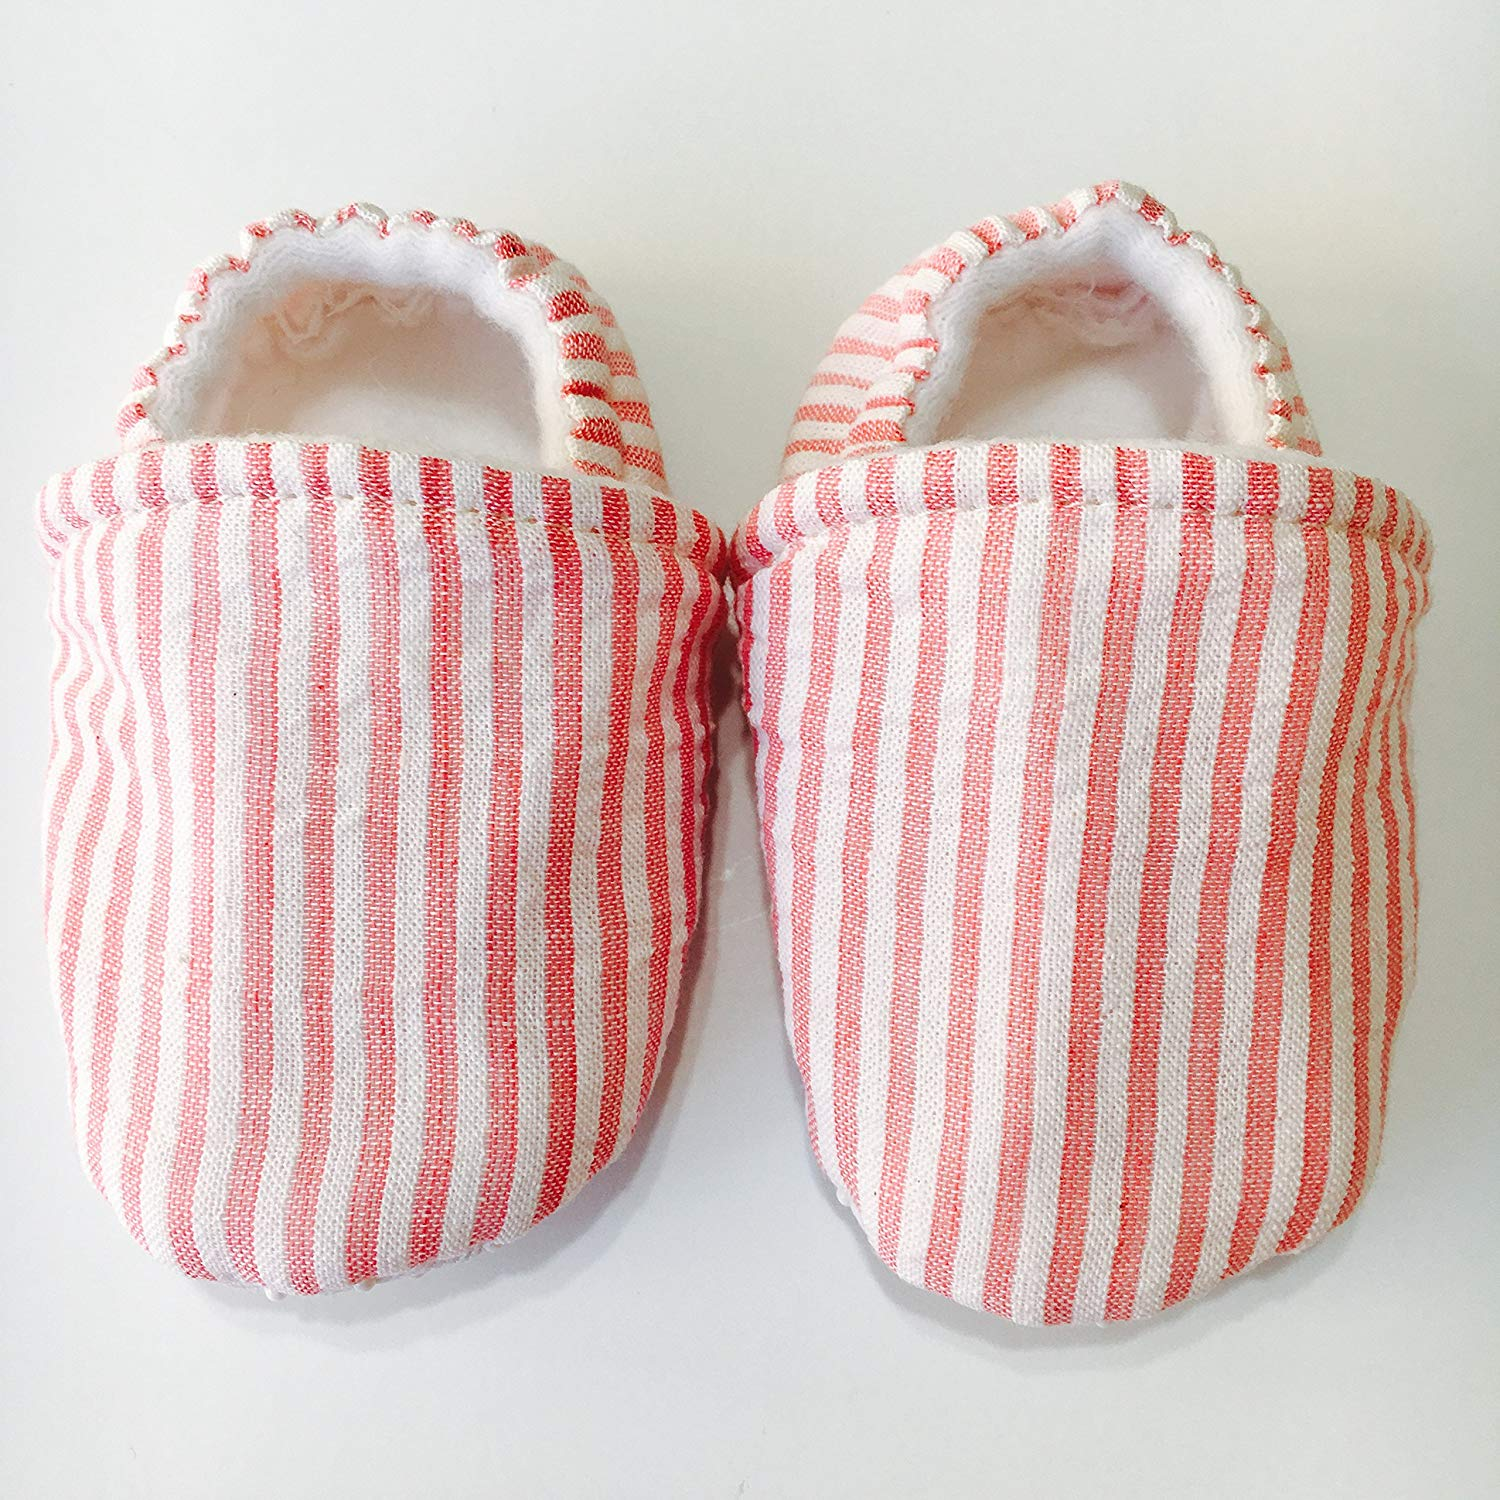 SOUTHERN BELLE pink seersucker baby shoes, classic southern baby girl clothing, pink baby shoes, traditional newborn infant or toddler shoes